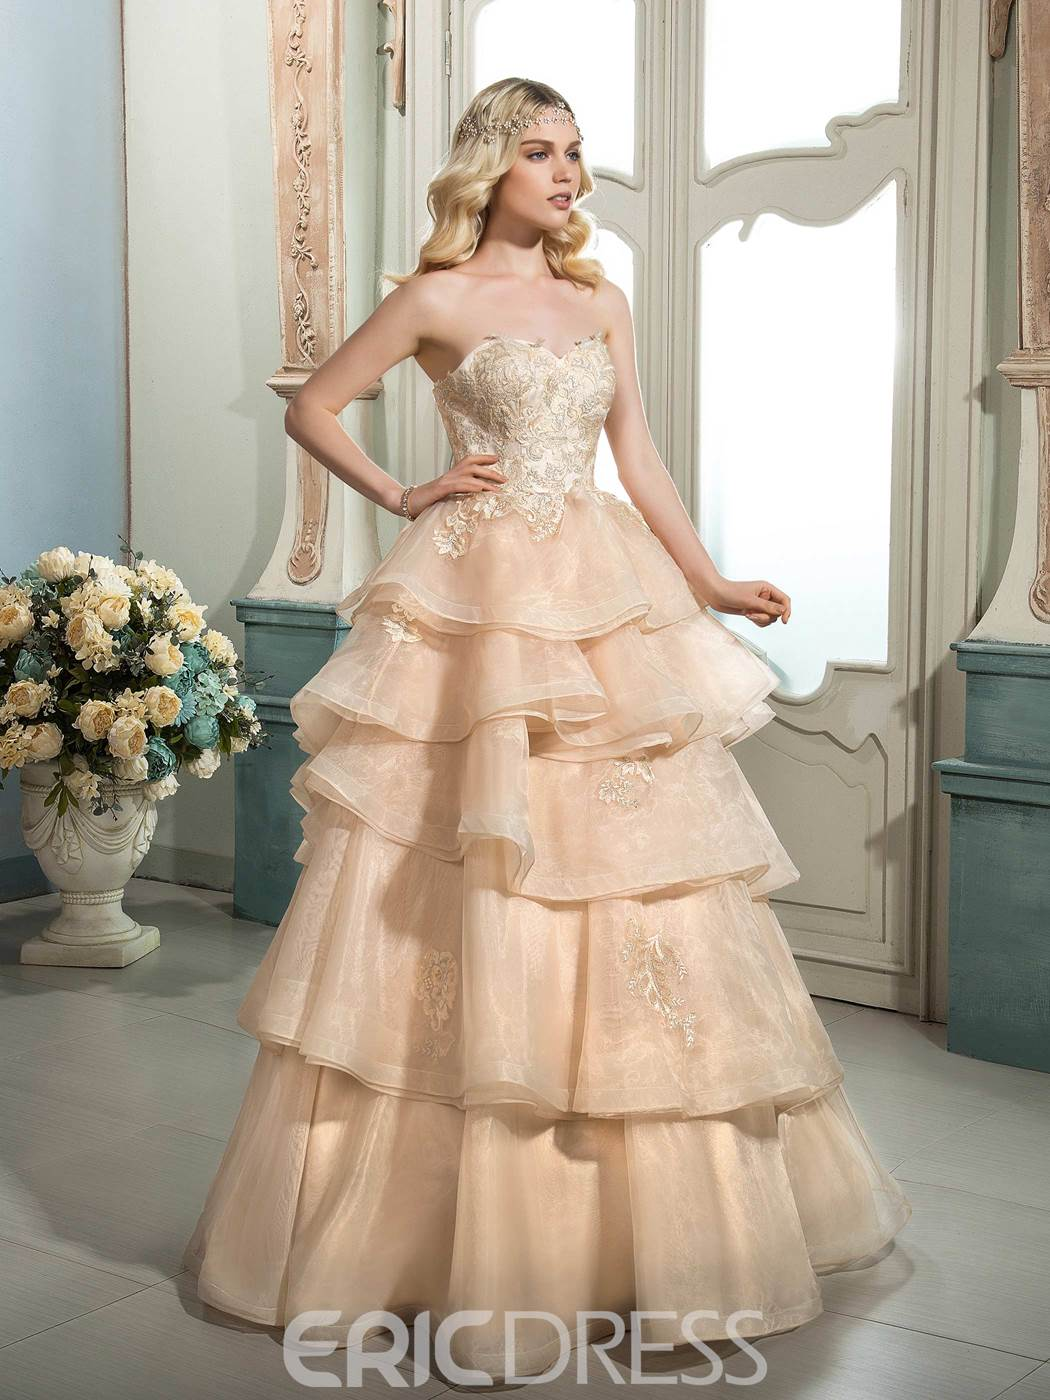 Ericdress Beautiful Appliques Sweetheart Color Wedding Dress